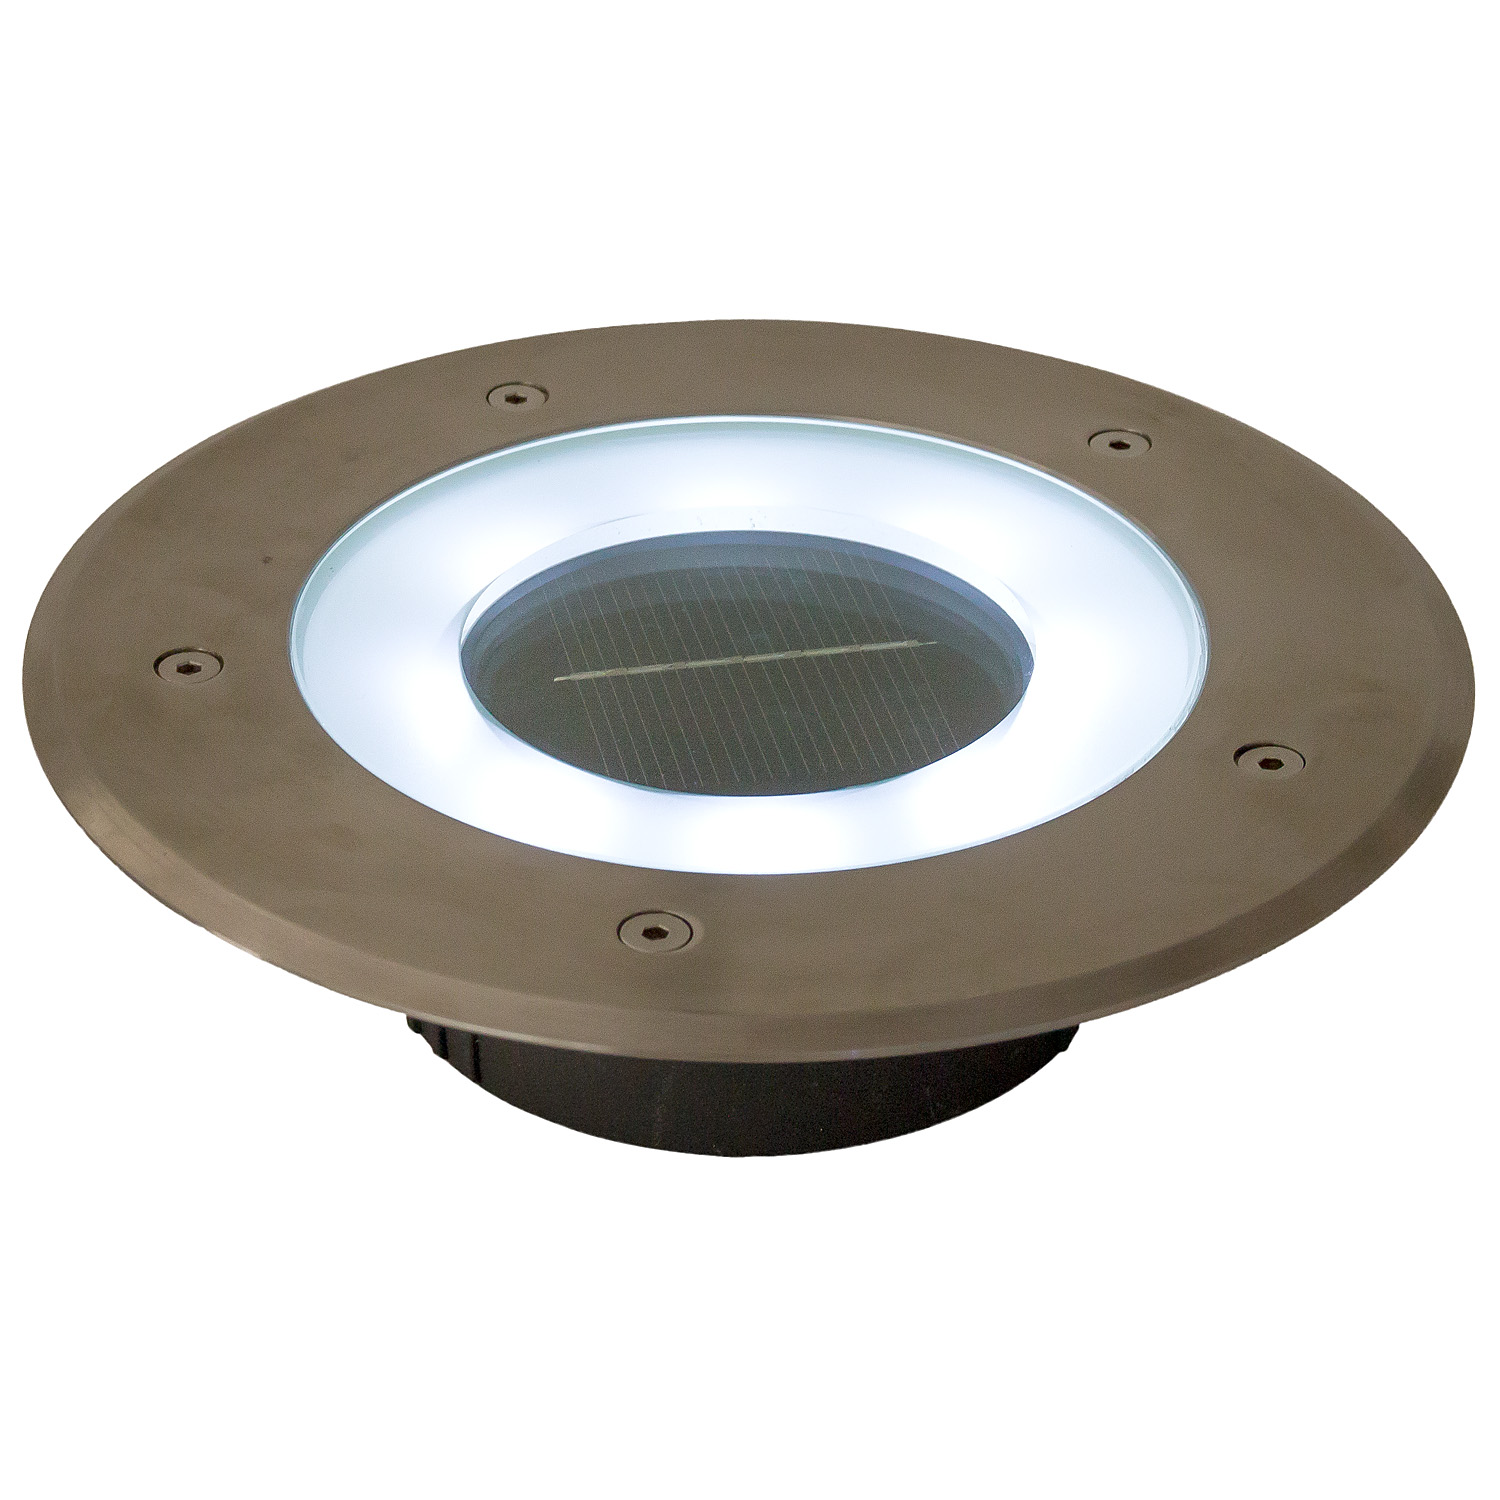 Solar power round recessed deck dock pathway garden led light ebay -  Solar Recessed 8 Inch Deck Dock Patio Pathway Light W 8 White Picture 1 Of 5 Picture 2 Of 5